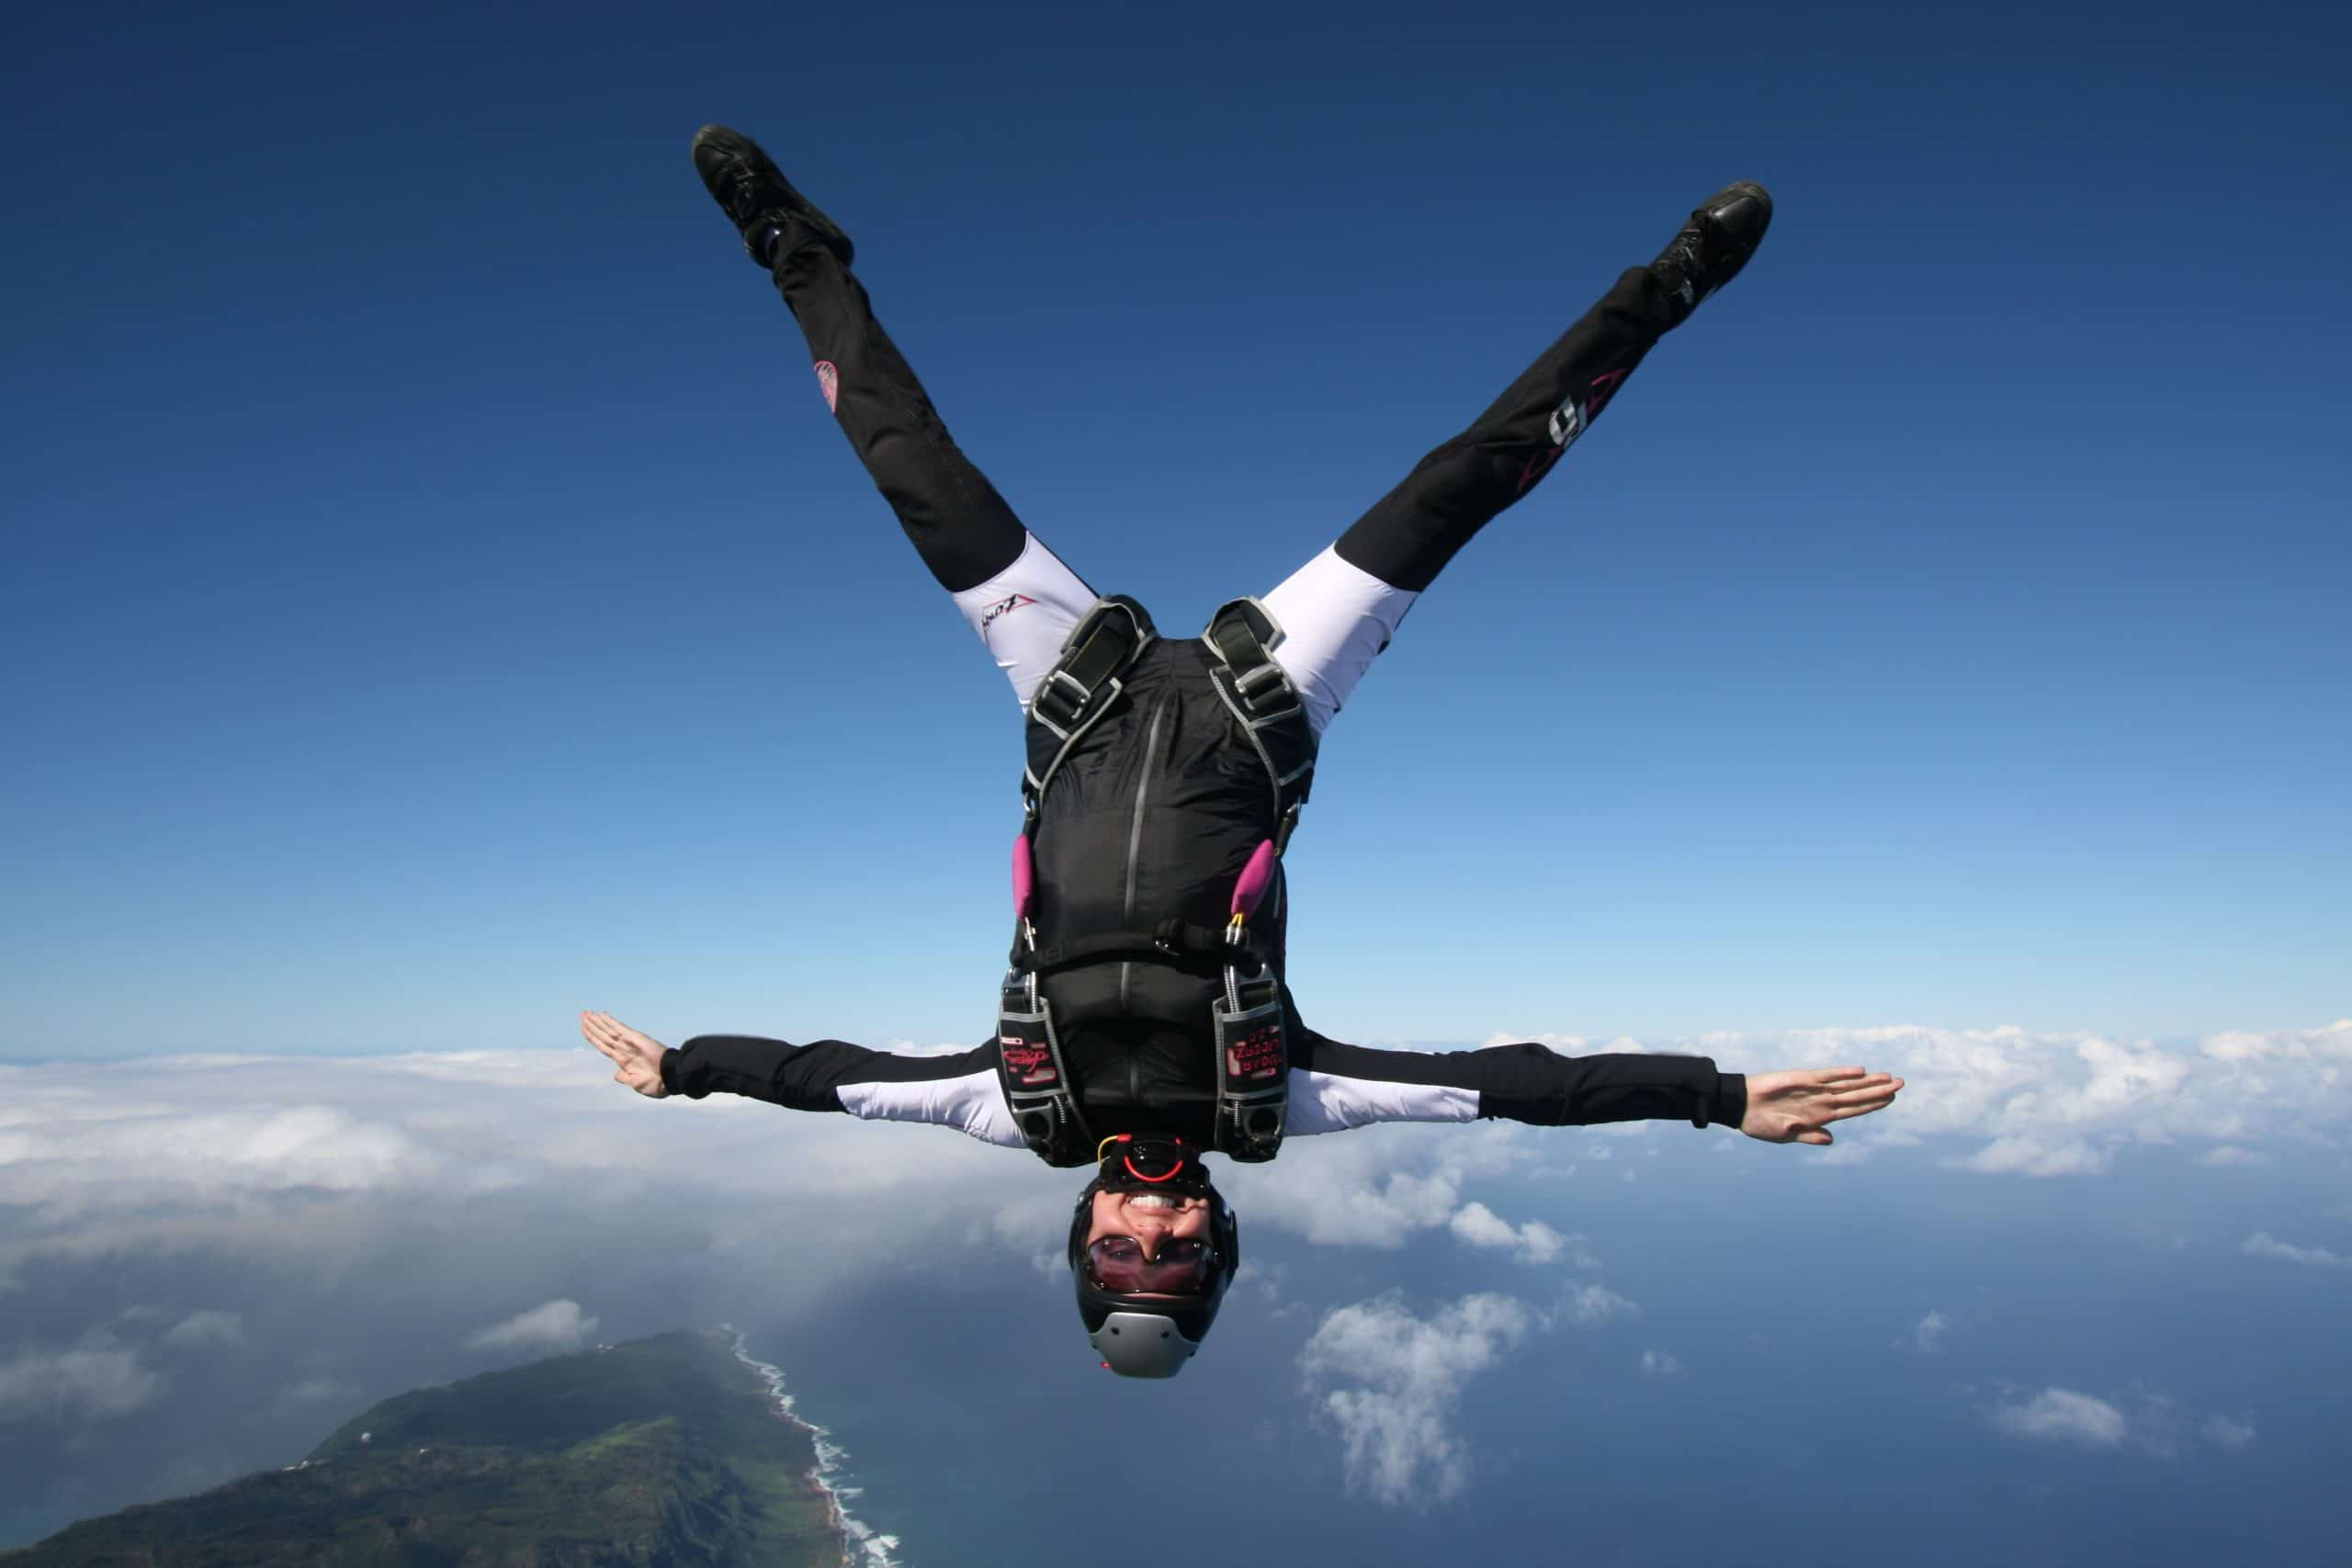 freestyle and freefly skydiving